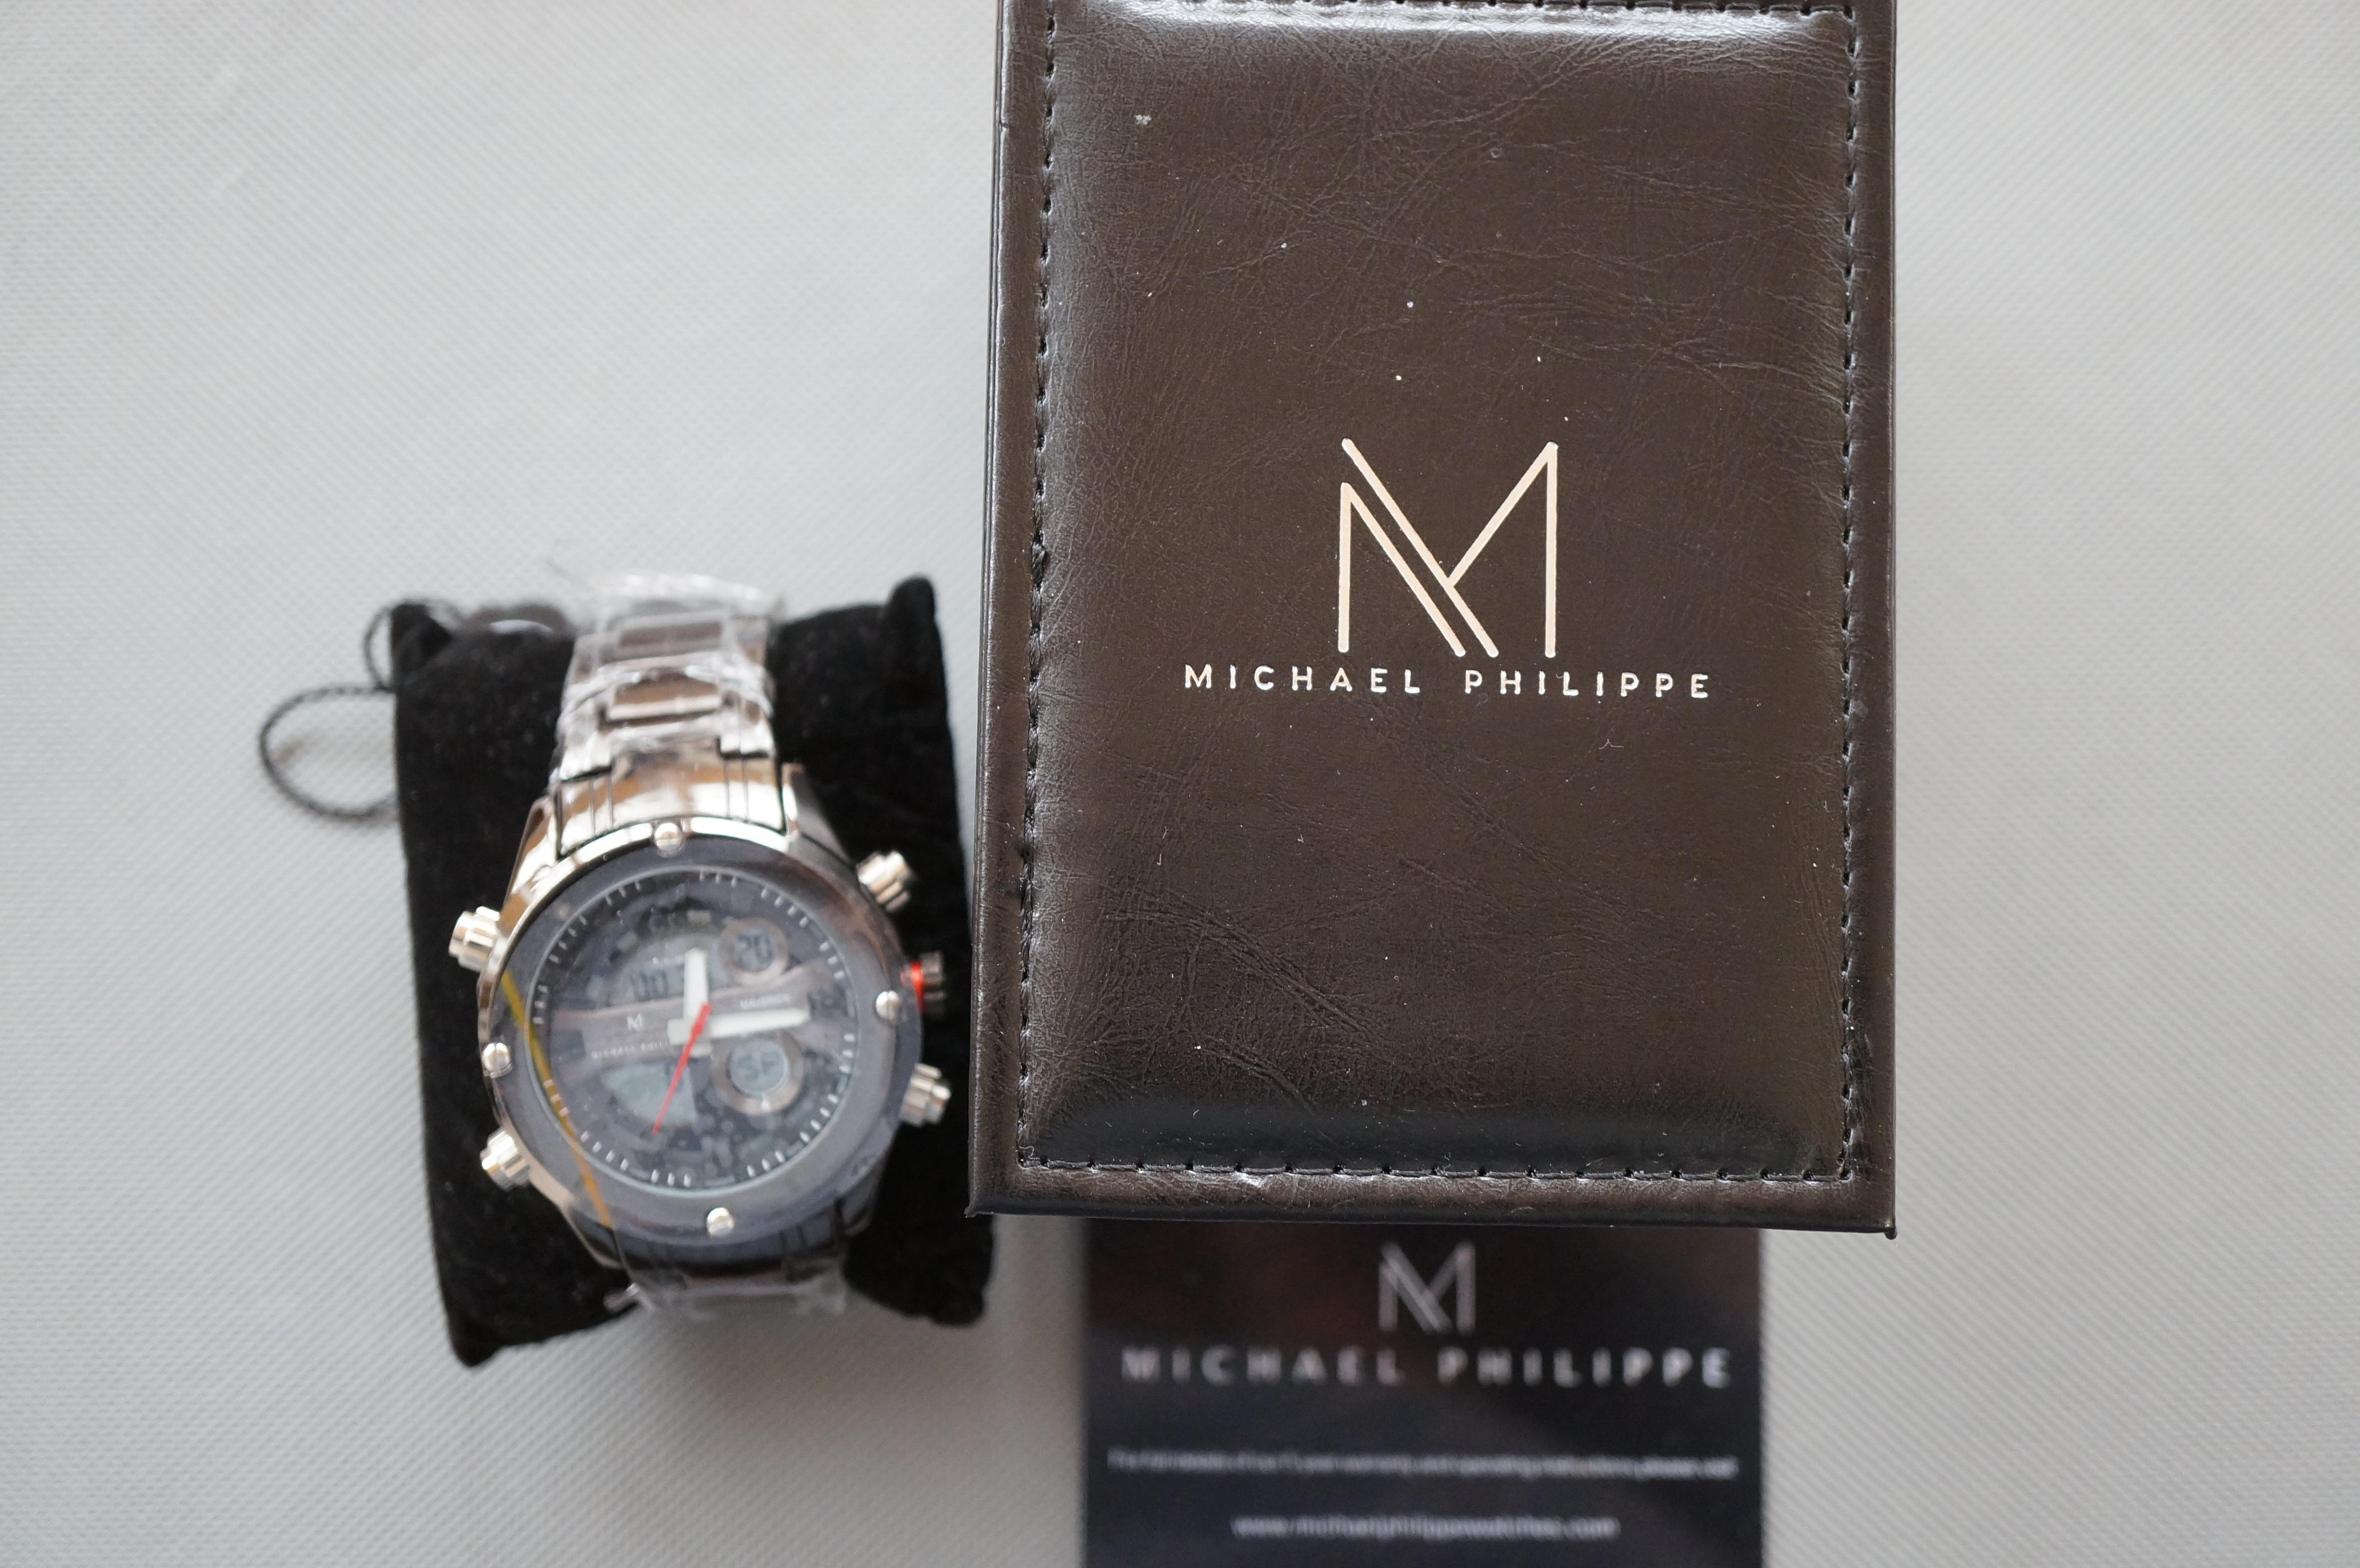 Gents Michael Phillipe Wristwatch Unused with Tags - Image 2 of 2